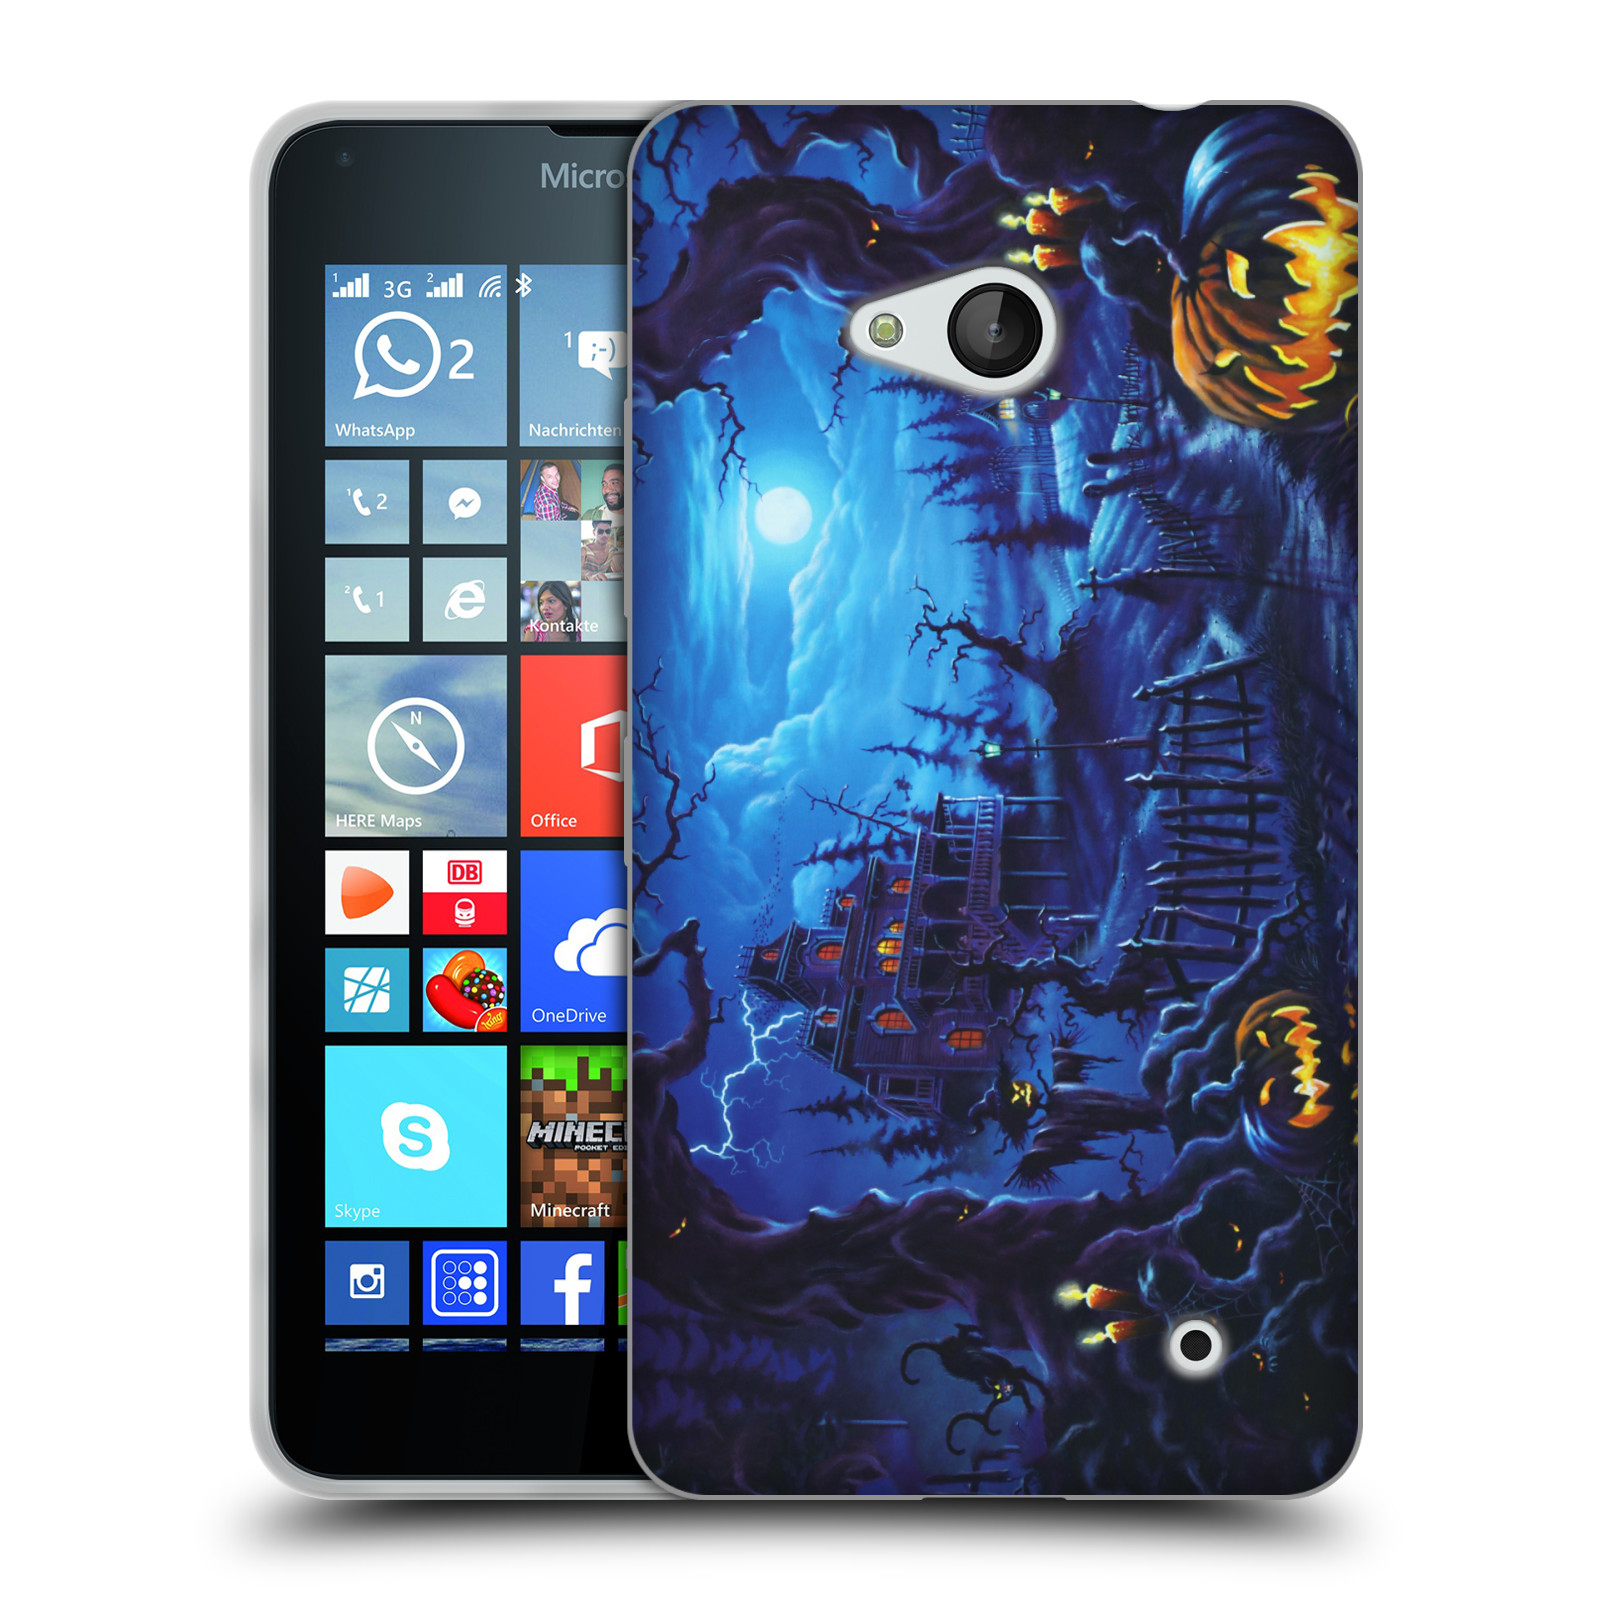 OFFICIAL-GENO-PEOPLES-ART-HALLOWEEN-SOFT-GEL-CASE-FOR-MICROSOFT-PHONES